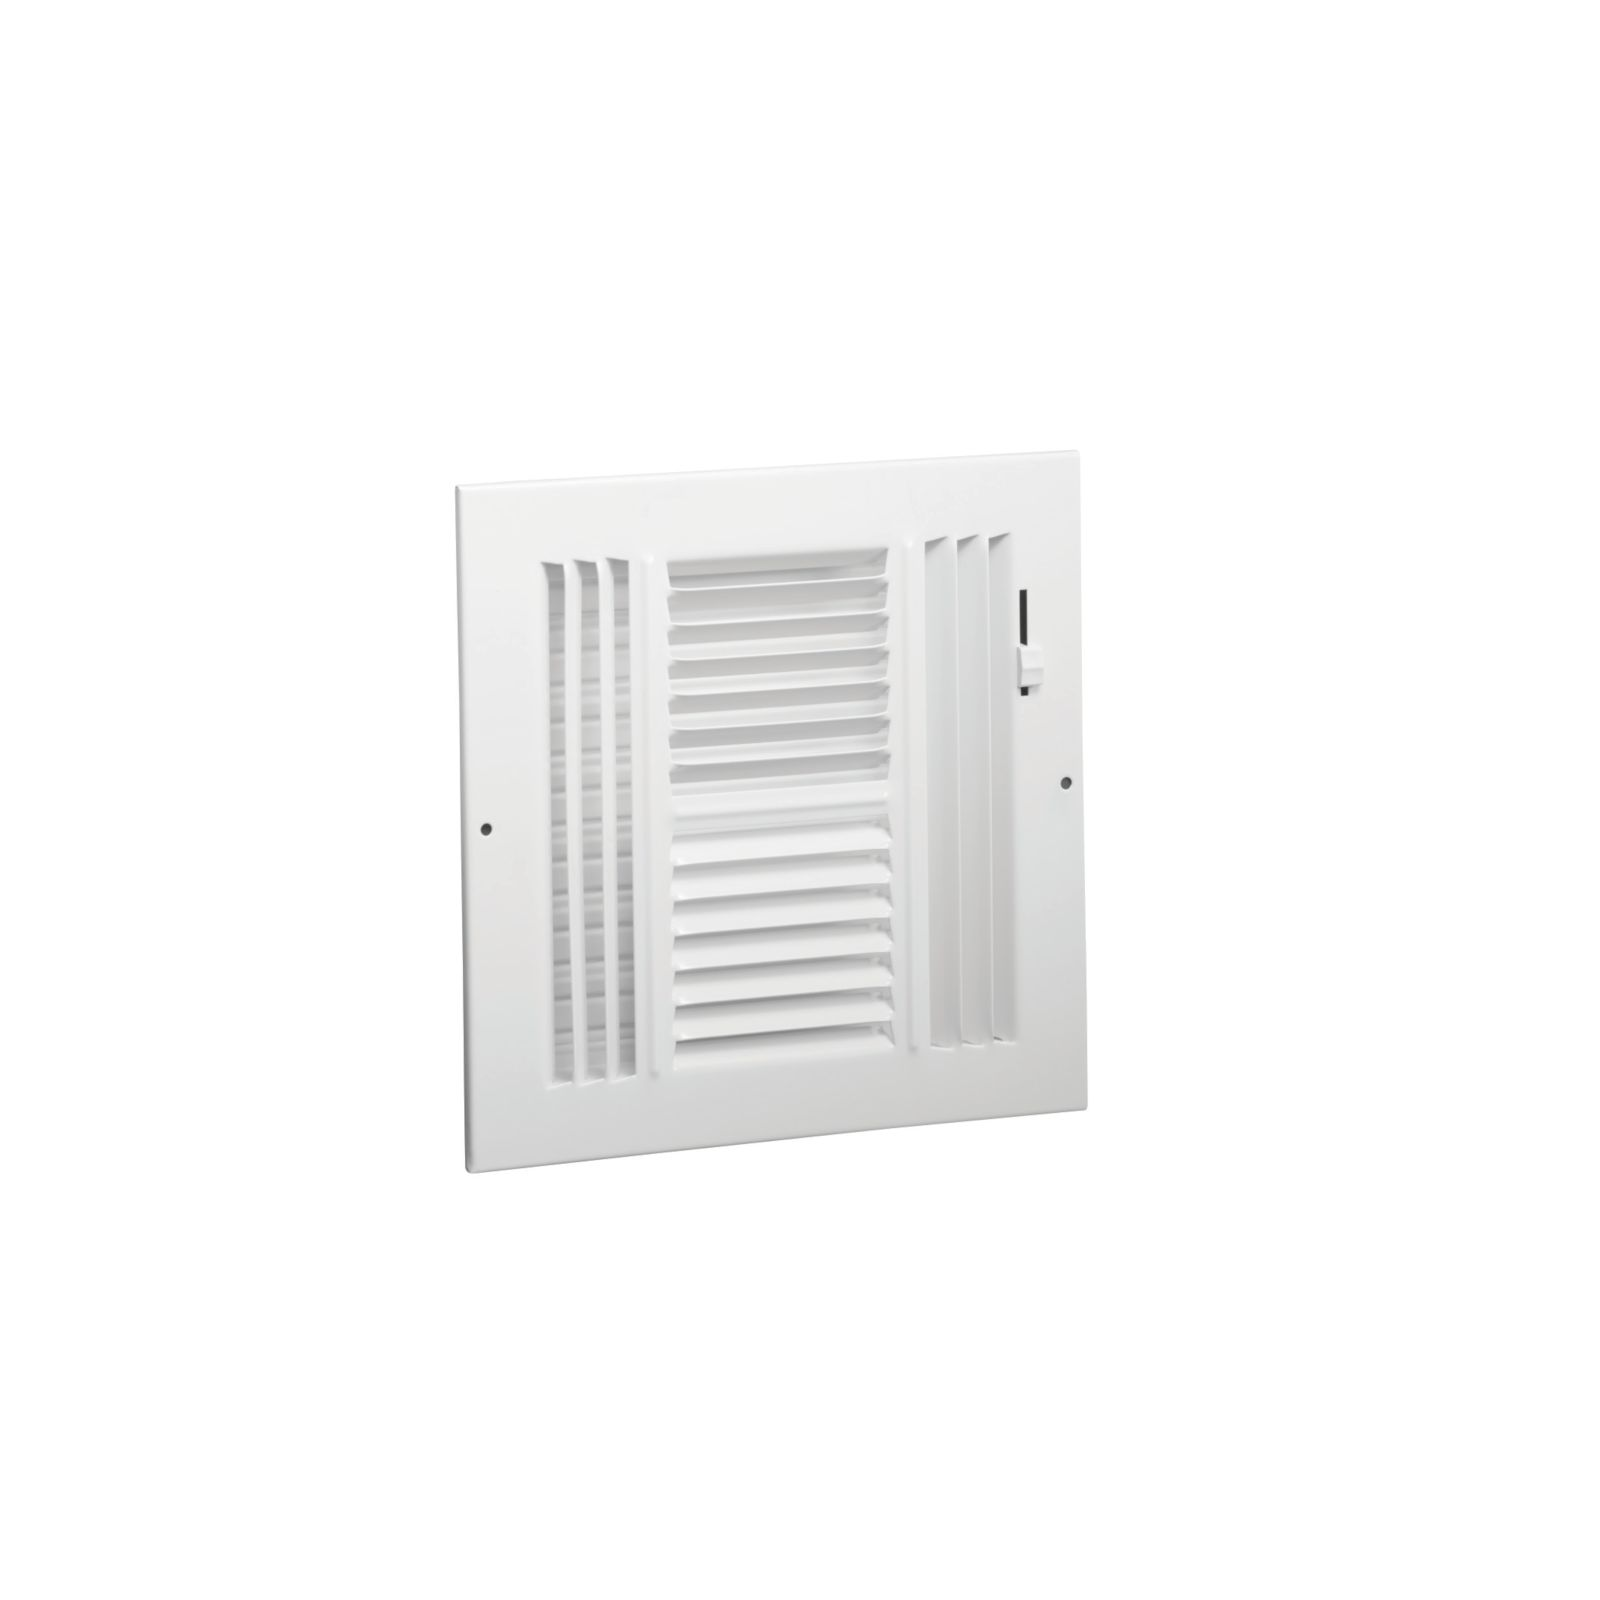 "Hart & Cooley 043889 - #684 Steel 4-Way Sidewall/Ceiling Register, Multi-Shutter Damper, Plastic Handle, White, 6"" X 6"""